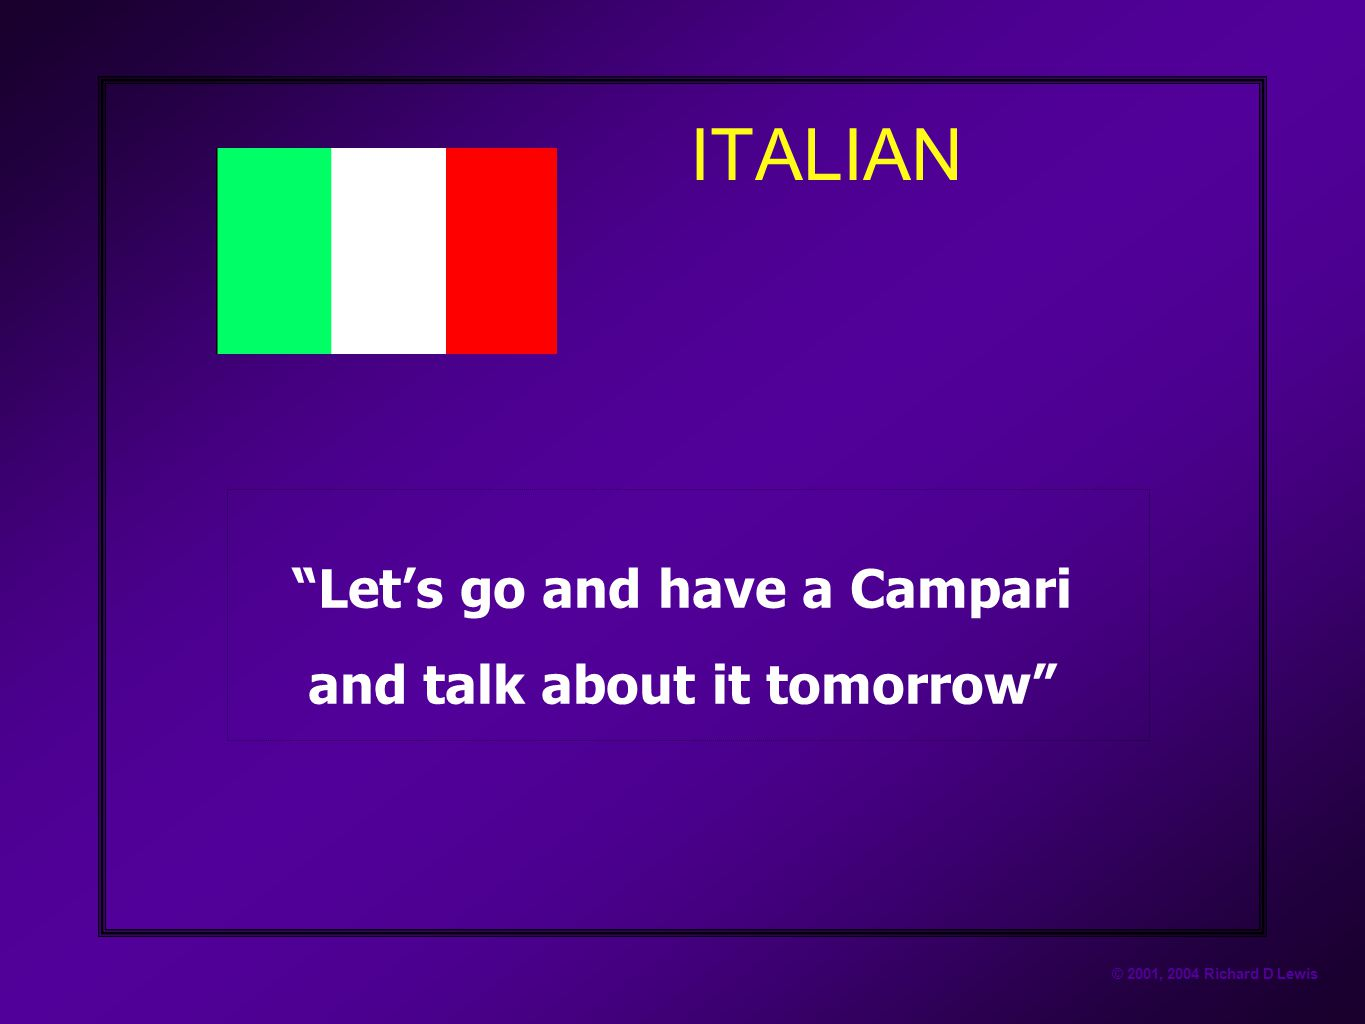 Let's go and have a Campari and talk about it tomorrow